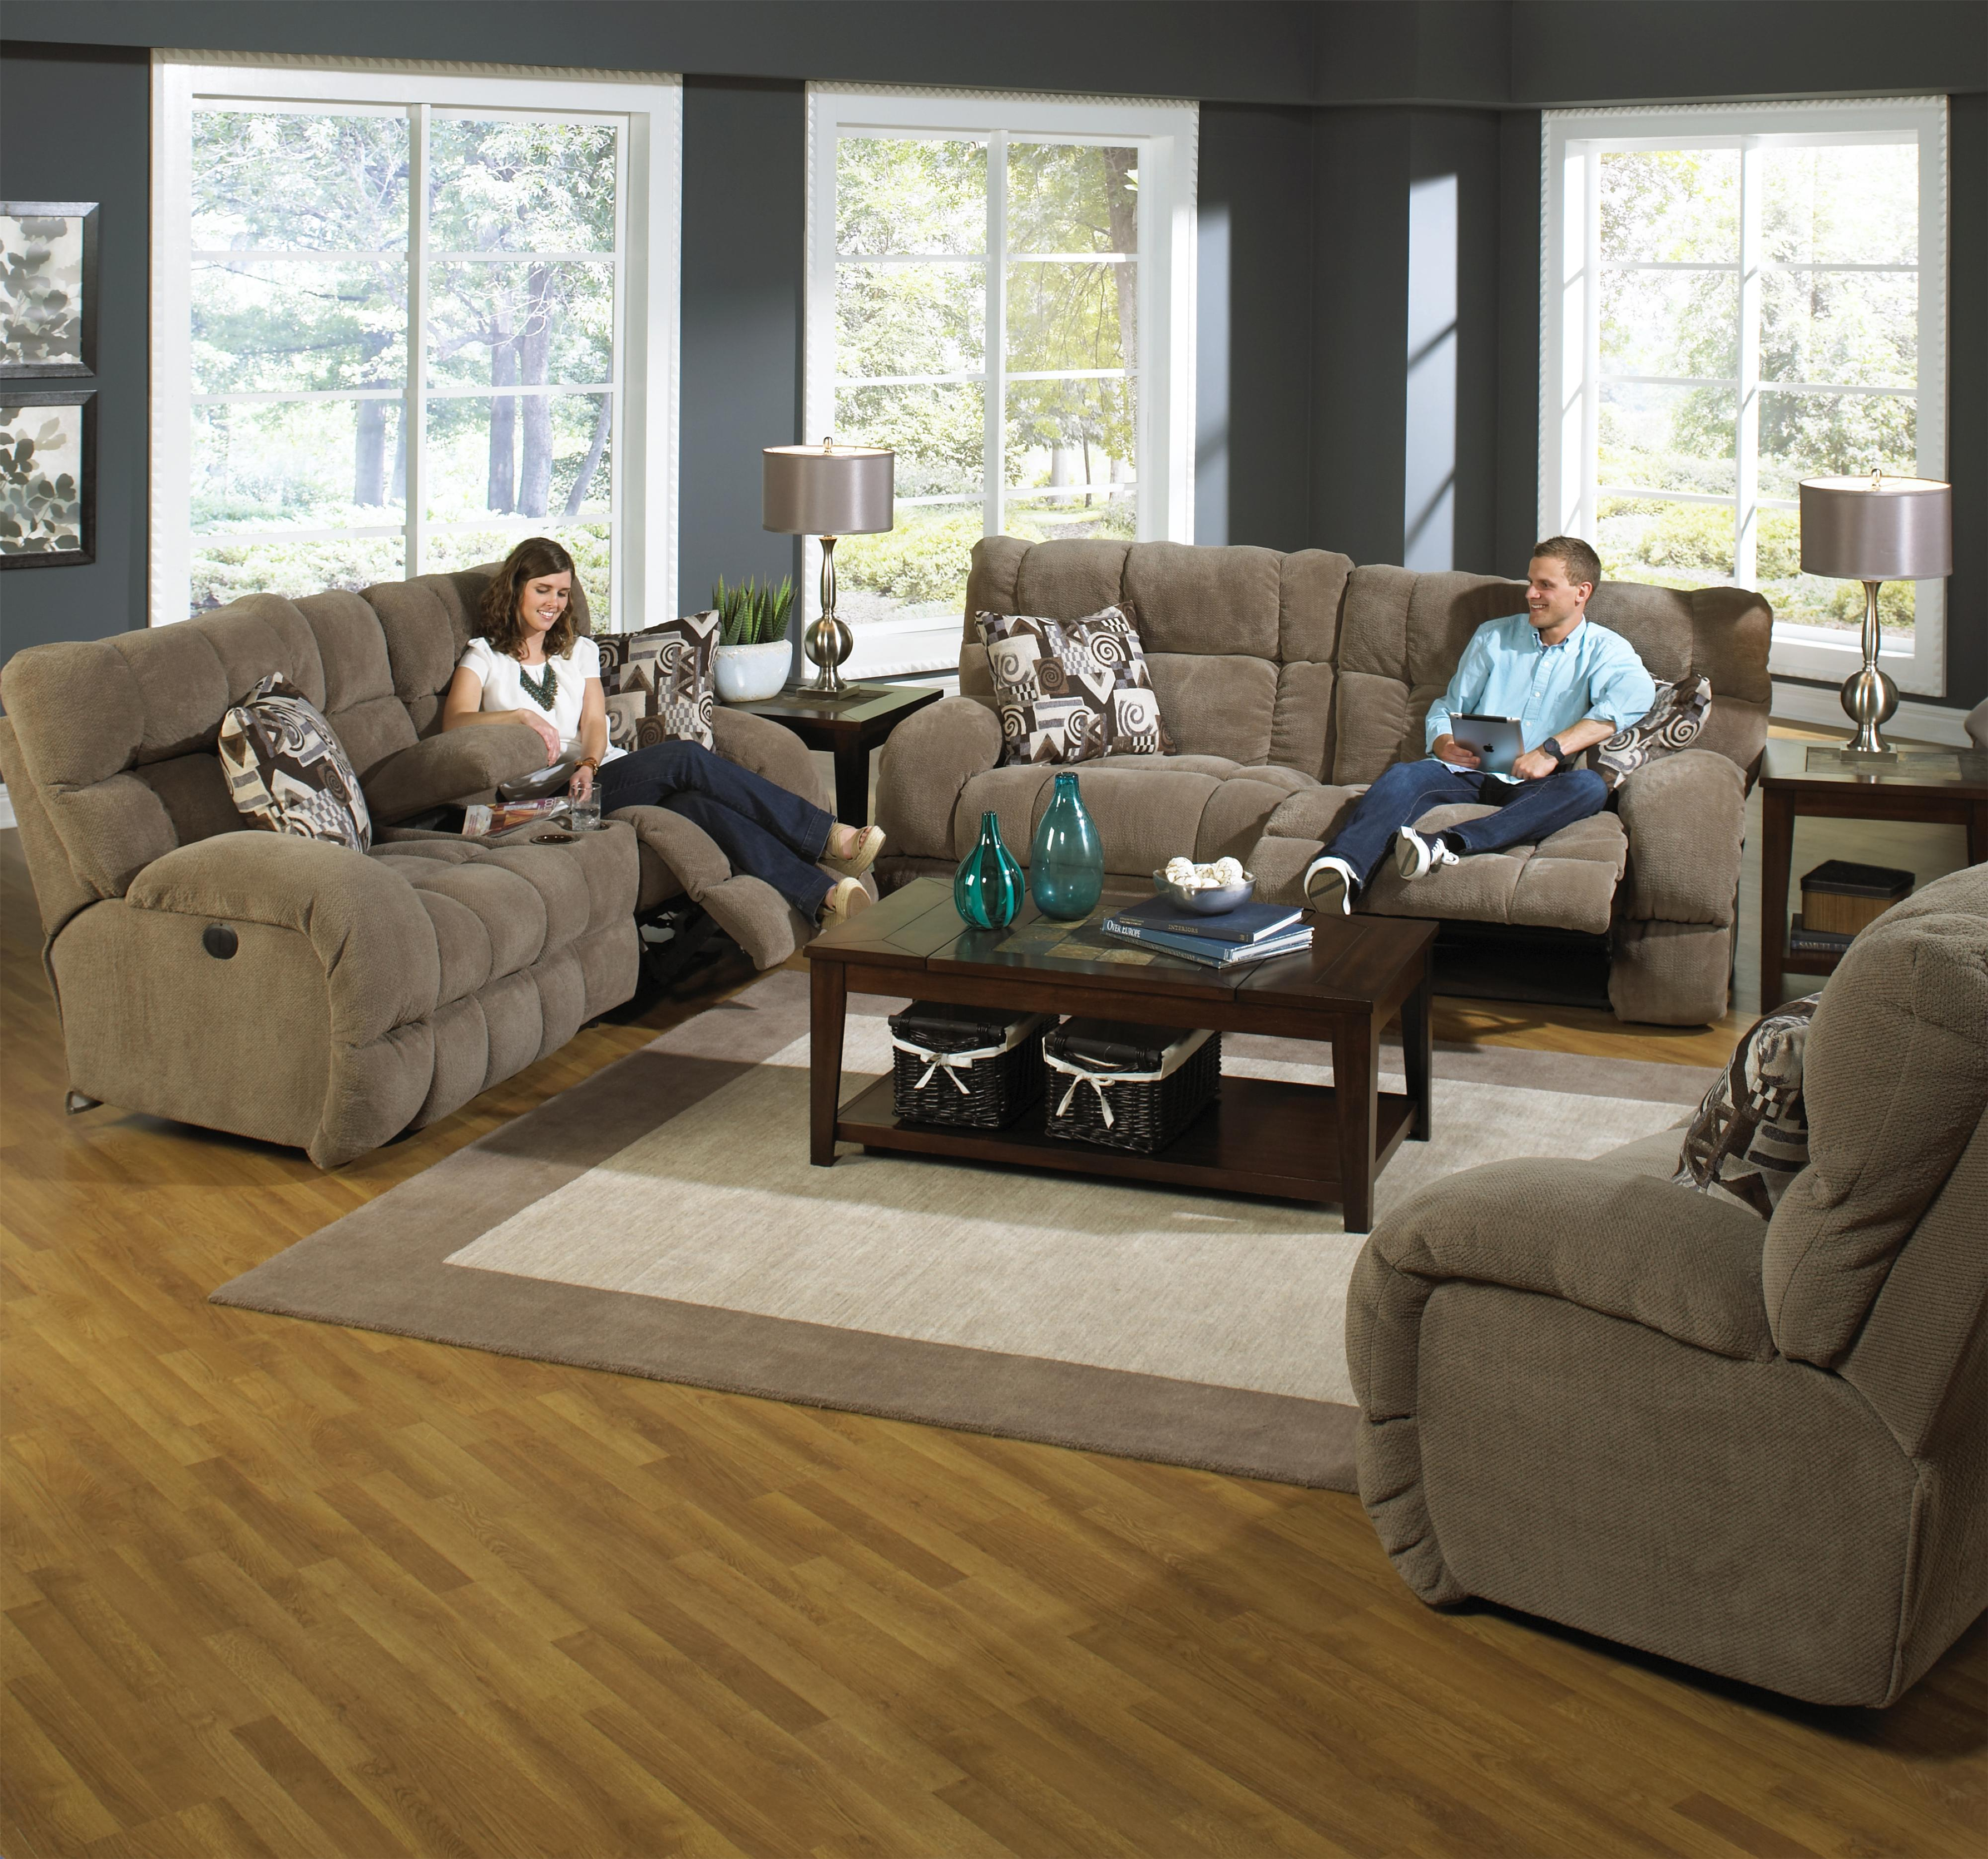 Lay Flat Recliner With Extra Wide Seat By Catnapper Wolf